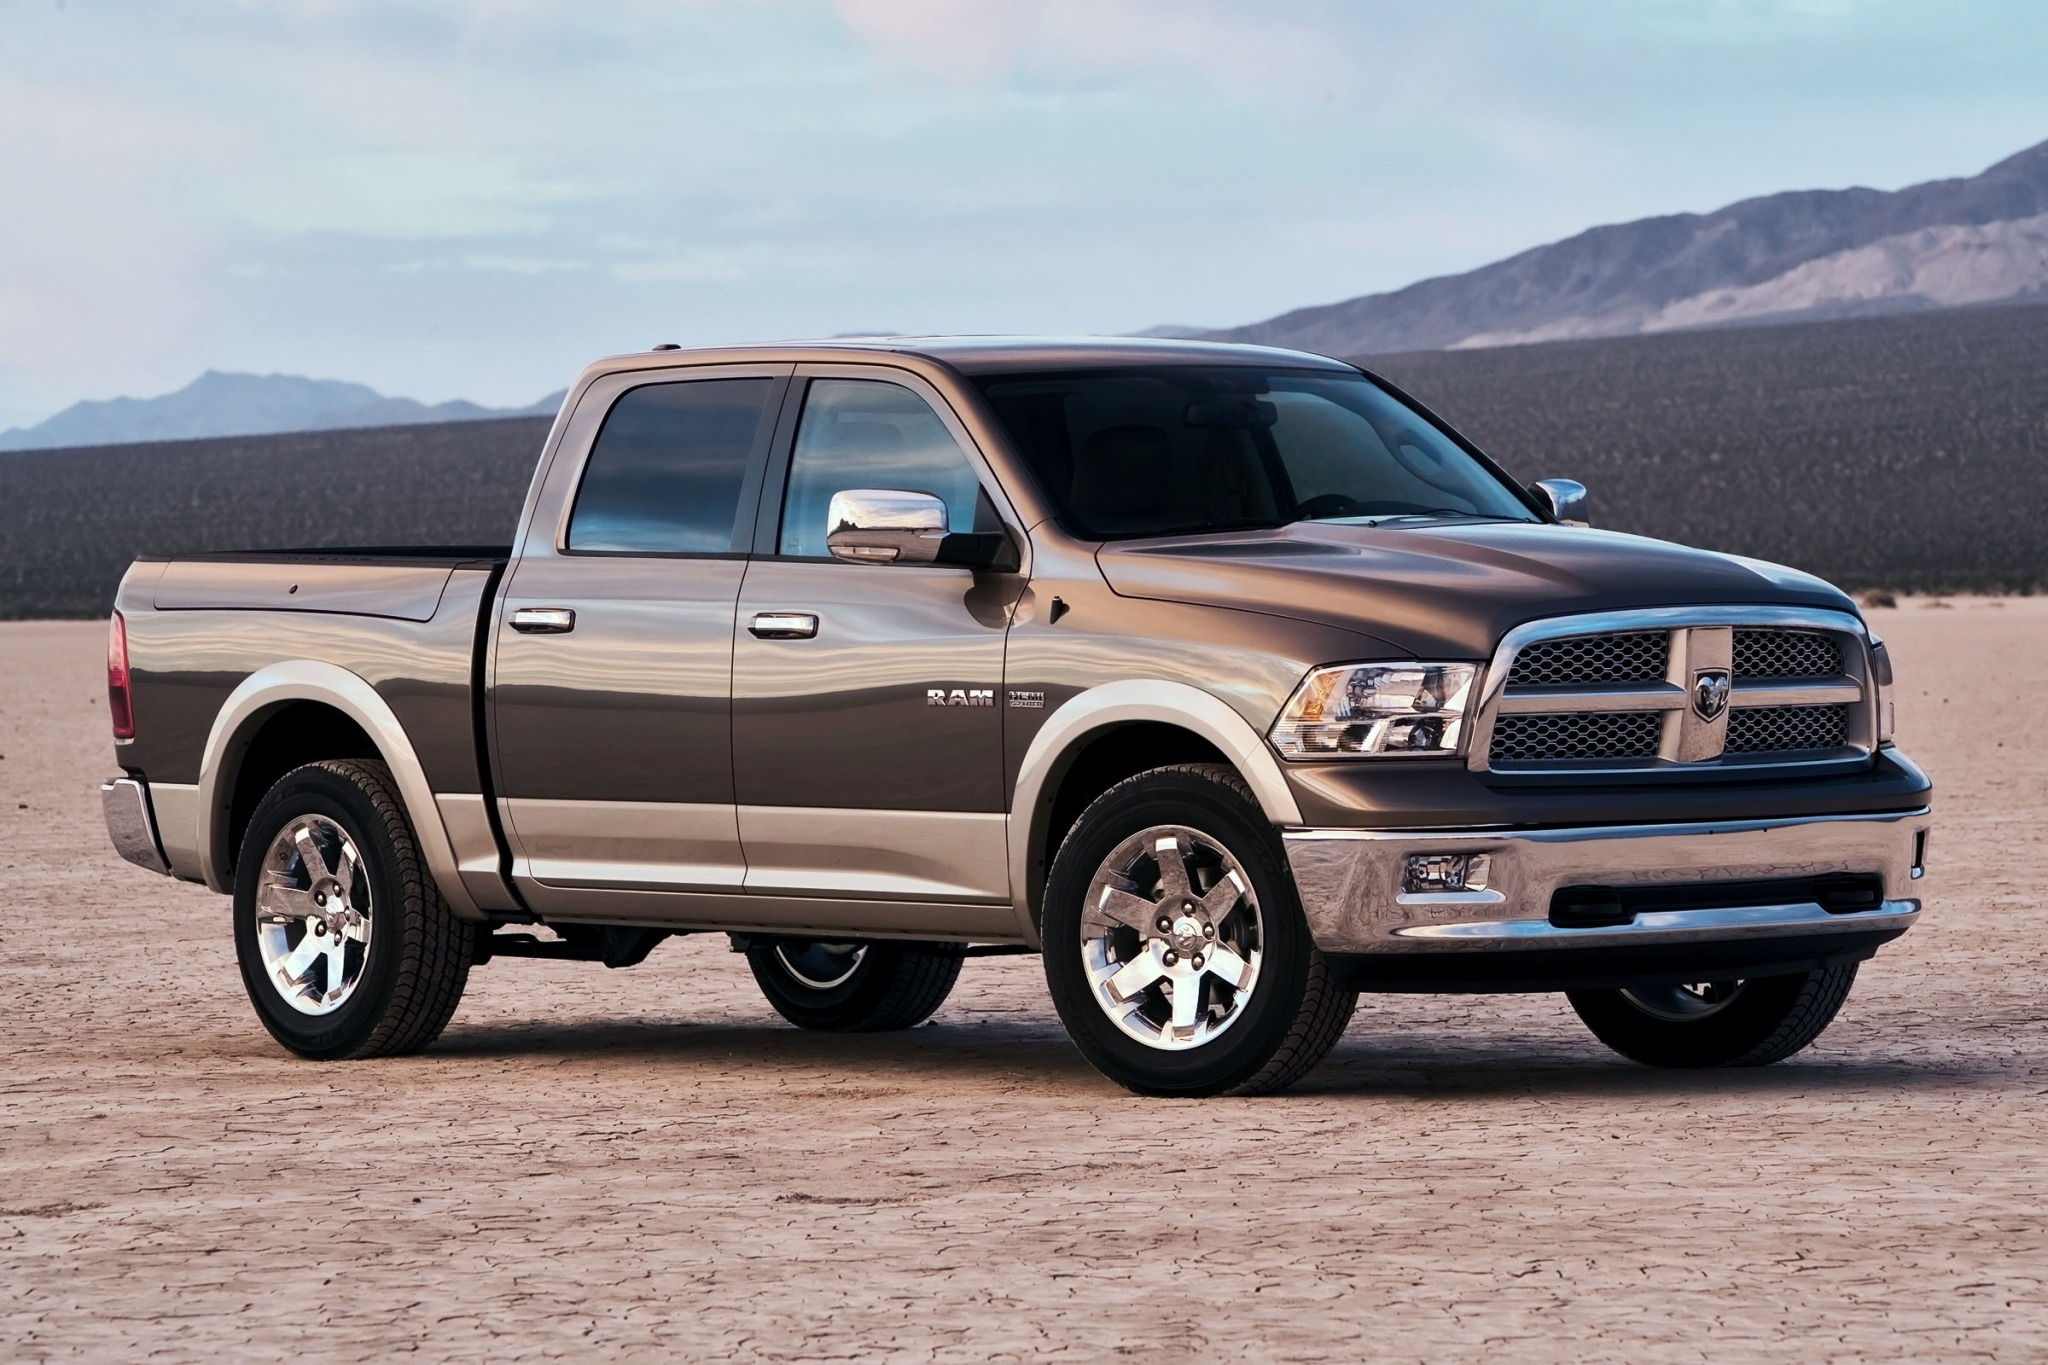 ram truck videos with 970 2012 Ram 1500 Crew Cab Pickup Laramie Fq Oem 1 2048 on Gm Unveils 2019 Chevrolet Silverado besides Dodge Ram Lug Nuts also Watch moreover Watch as well .